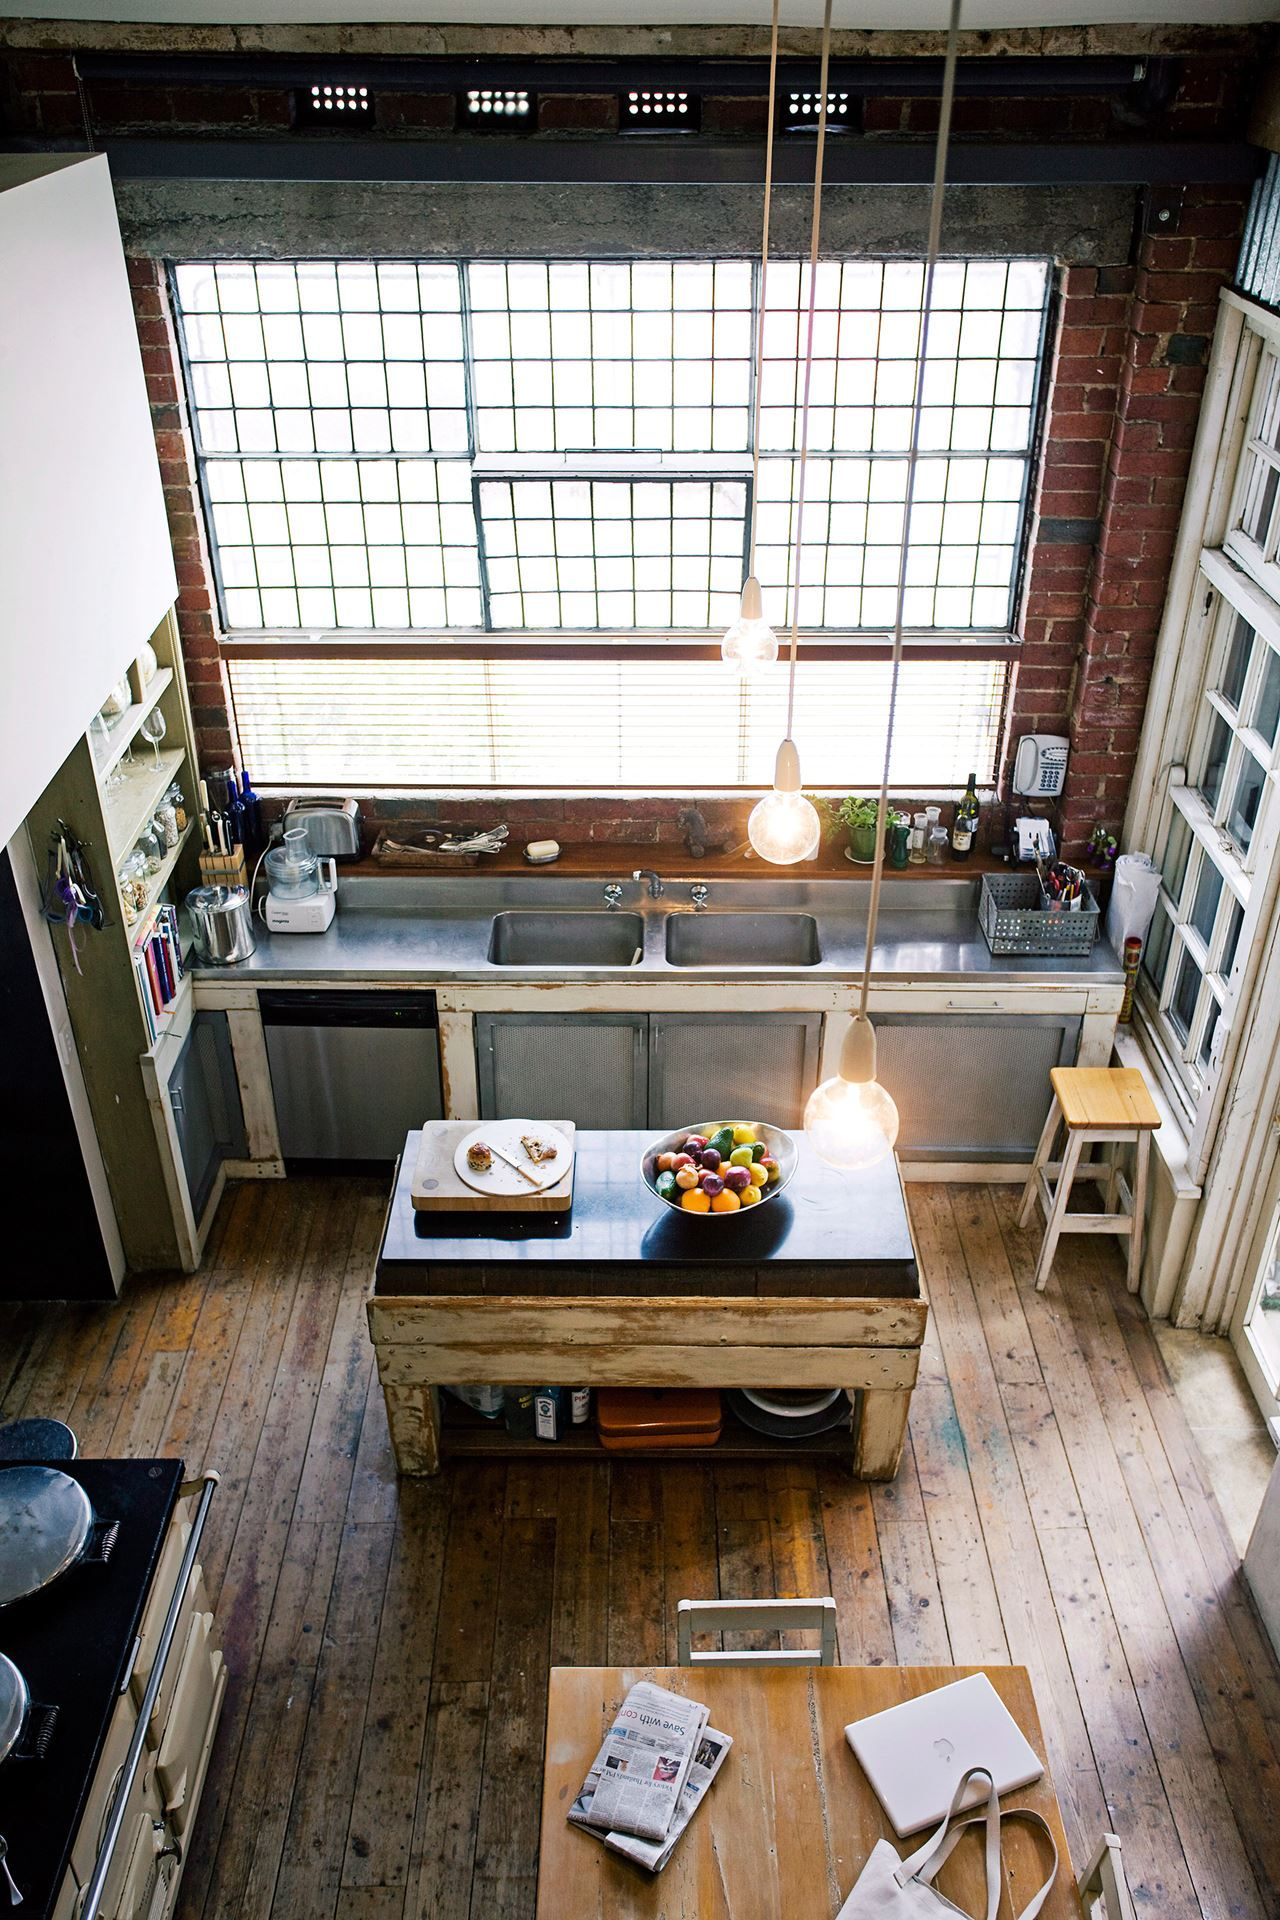 Nyc is known for its loft apartments converted from former factories this kitchen combines industrial stainless steel with rustic timber for a truly